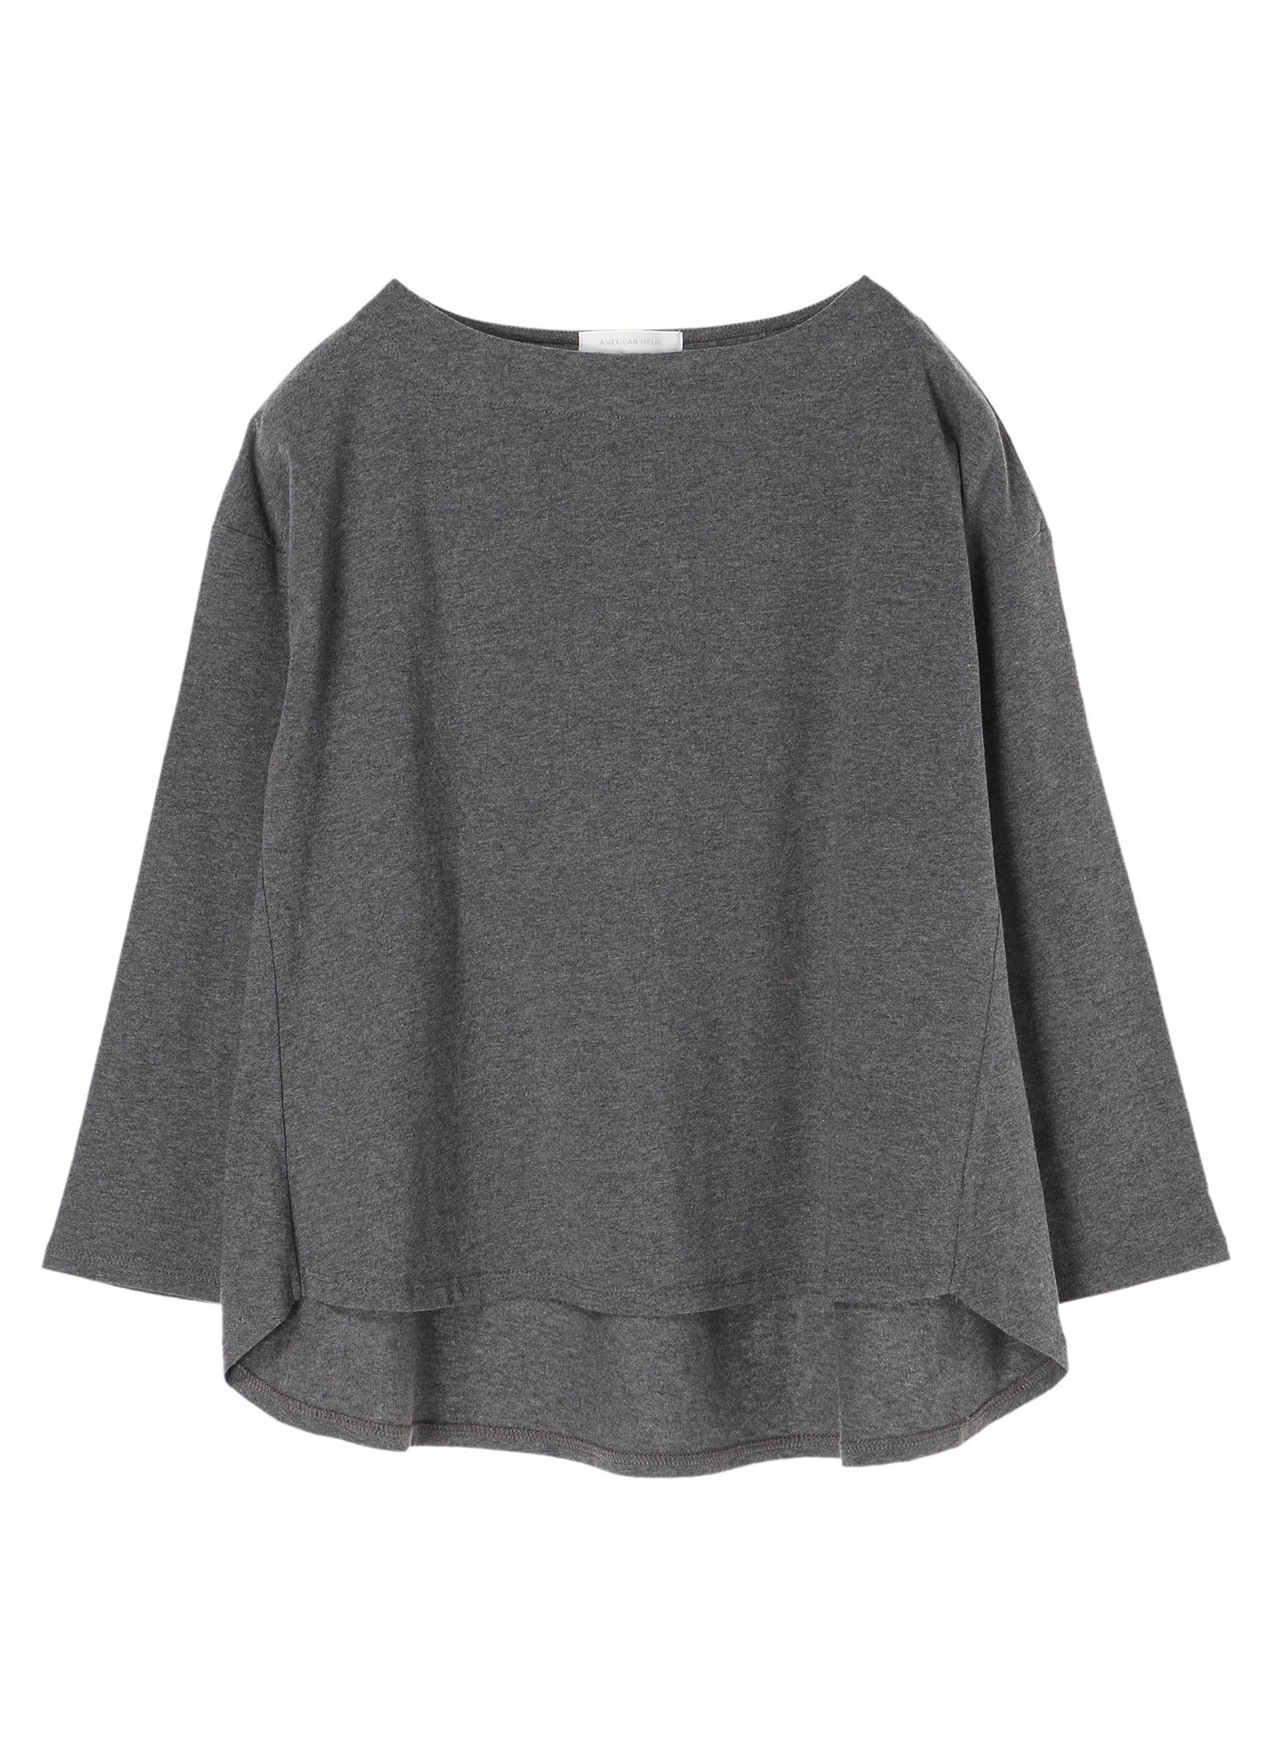 American Holic Rika Top - Charcoal Gray